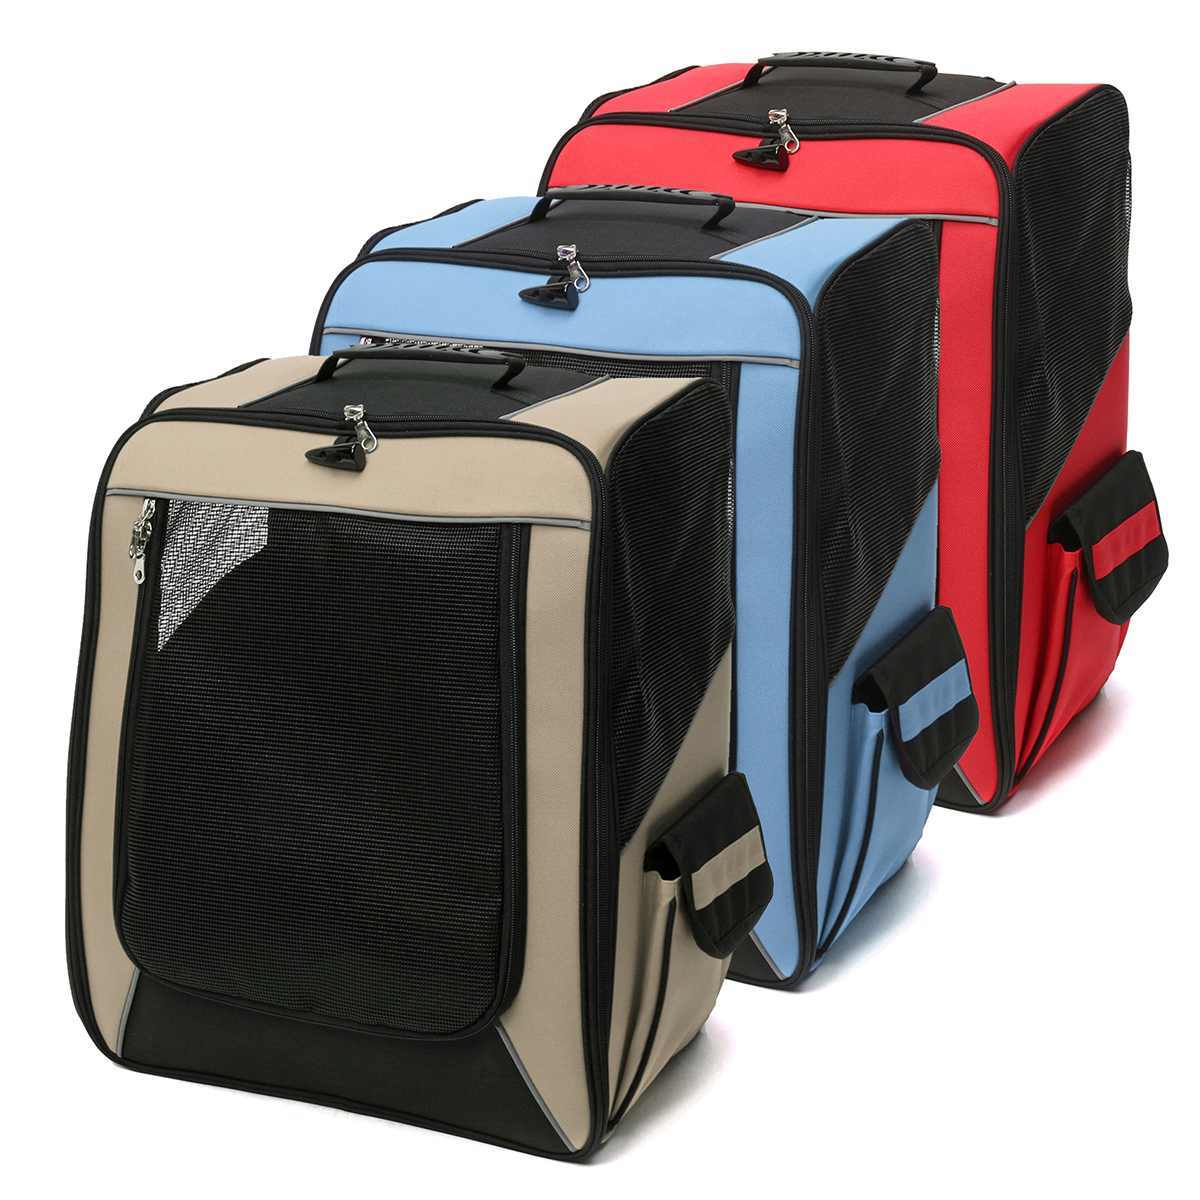 Dog Stroller Carrier Pet Travelling Dog Pet Knapsack Walking Suitcase Trolley Four-wheeled Breathable Carry Cart Draw-bar Box